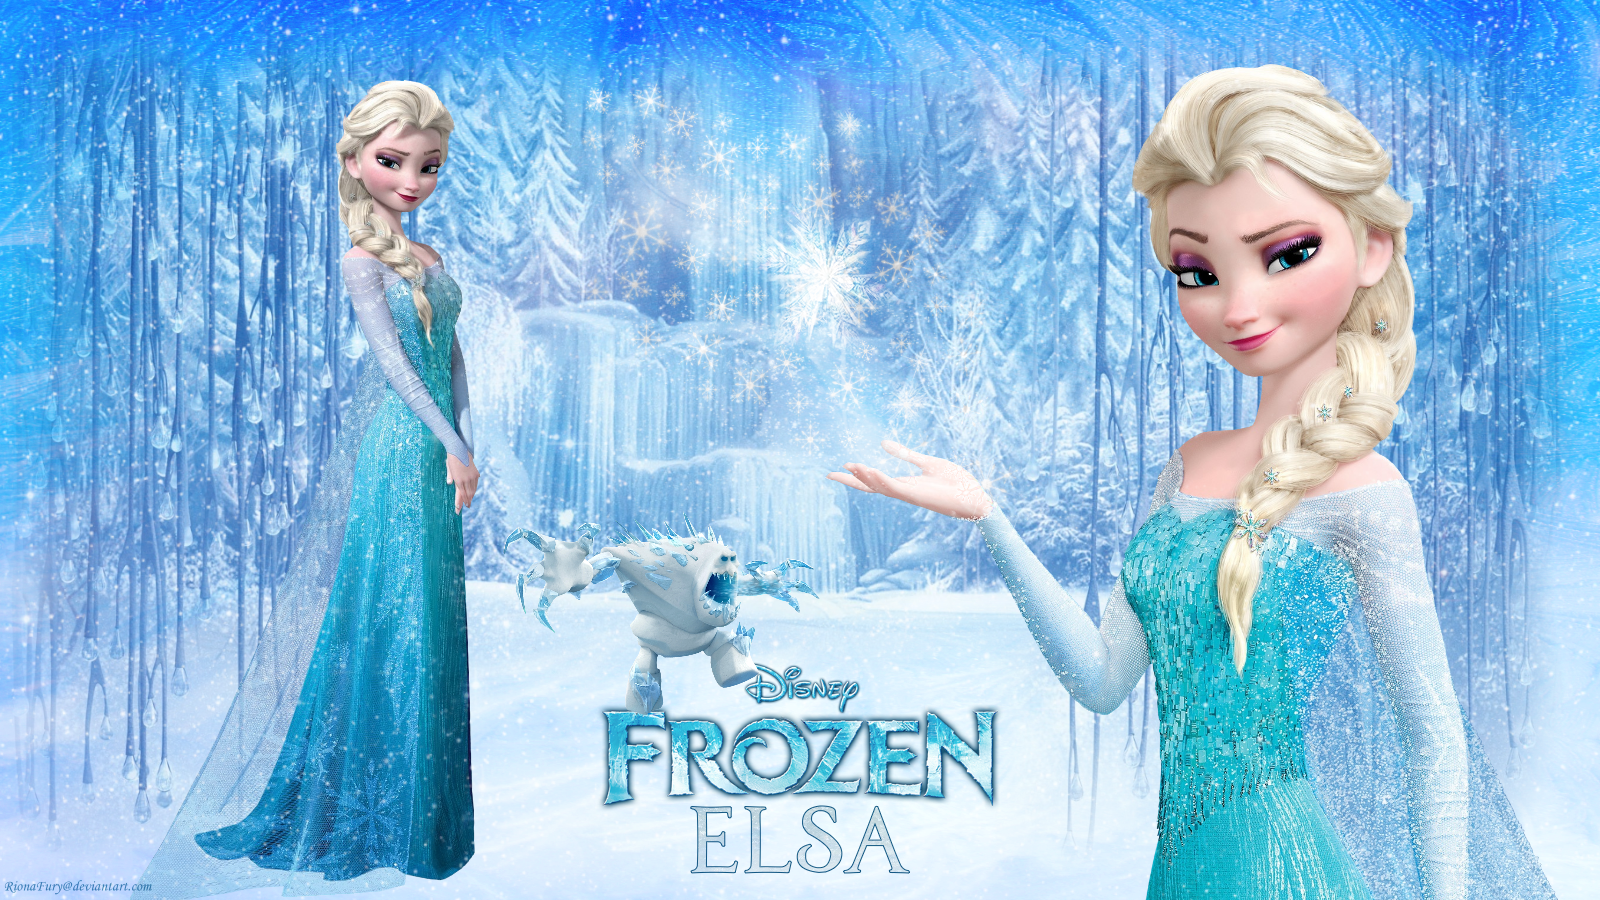 frozen-elsa-free-fall-hd-wallpapers-free-downloaded - hd wallpaper